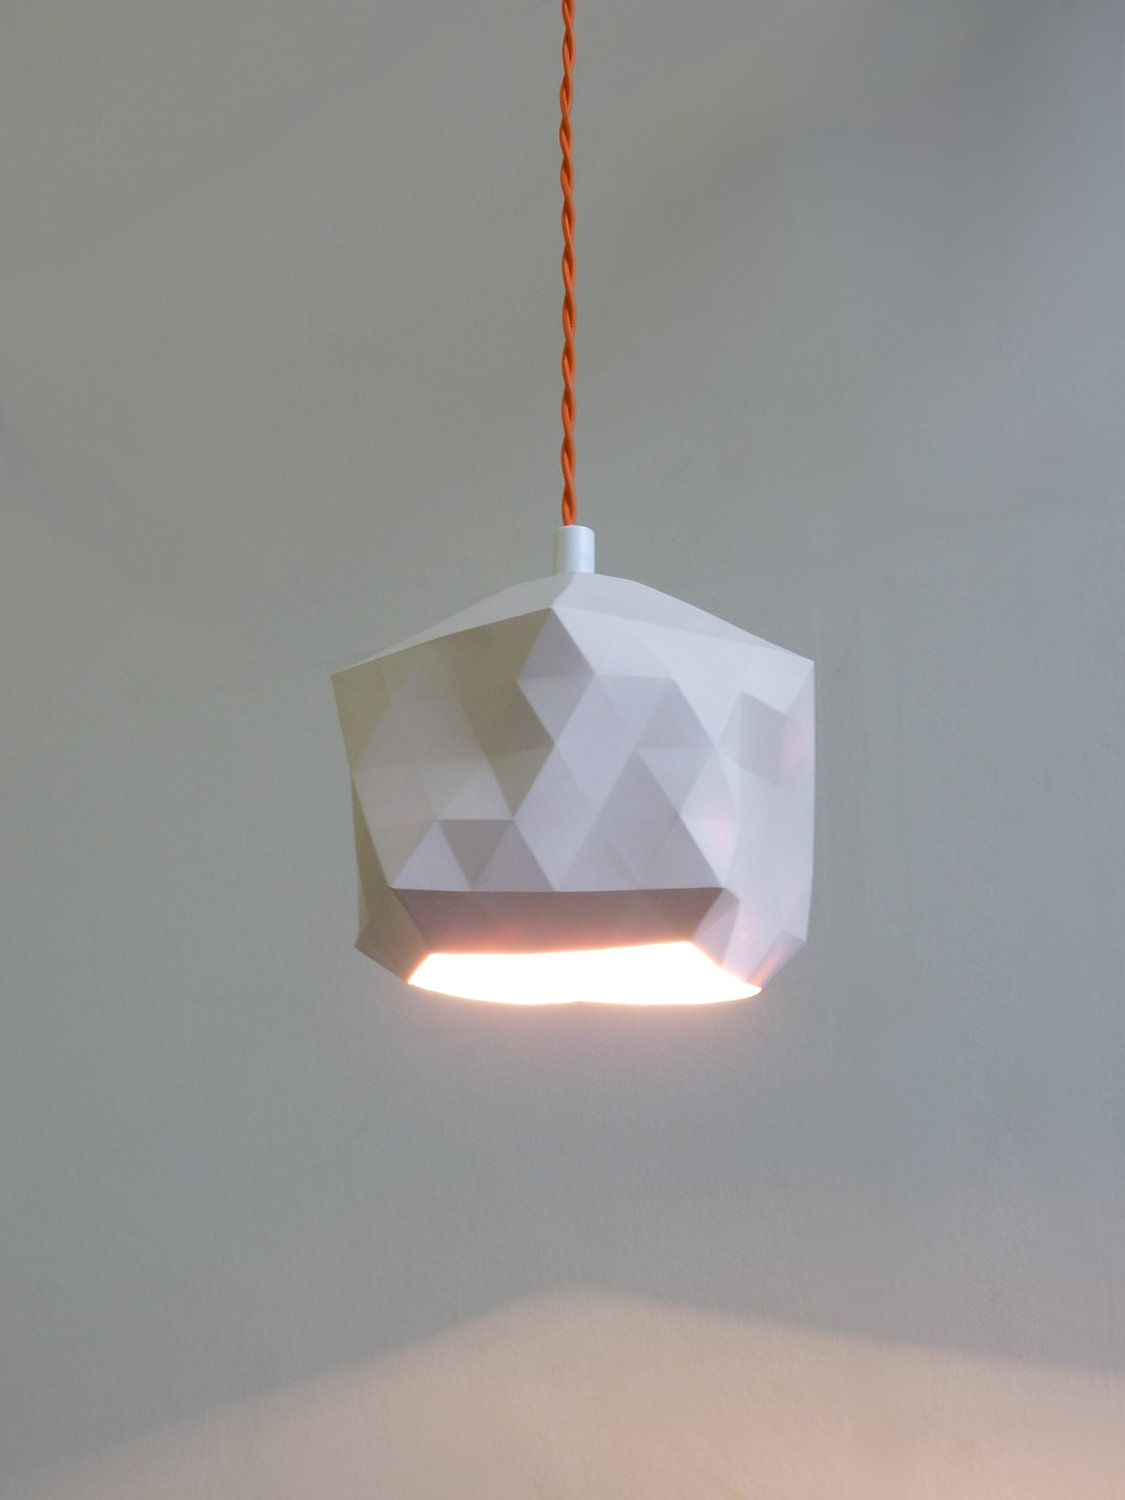 Love This Faceted Globe Pendant Light But Probably Too Fancy And Impractical For Cattery Keeping